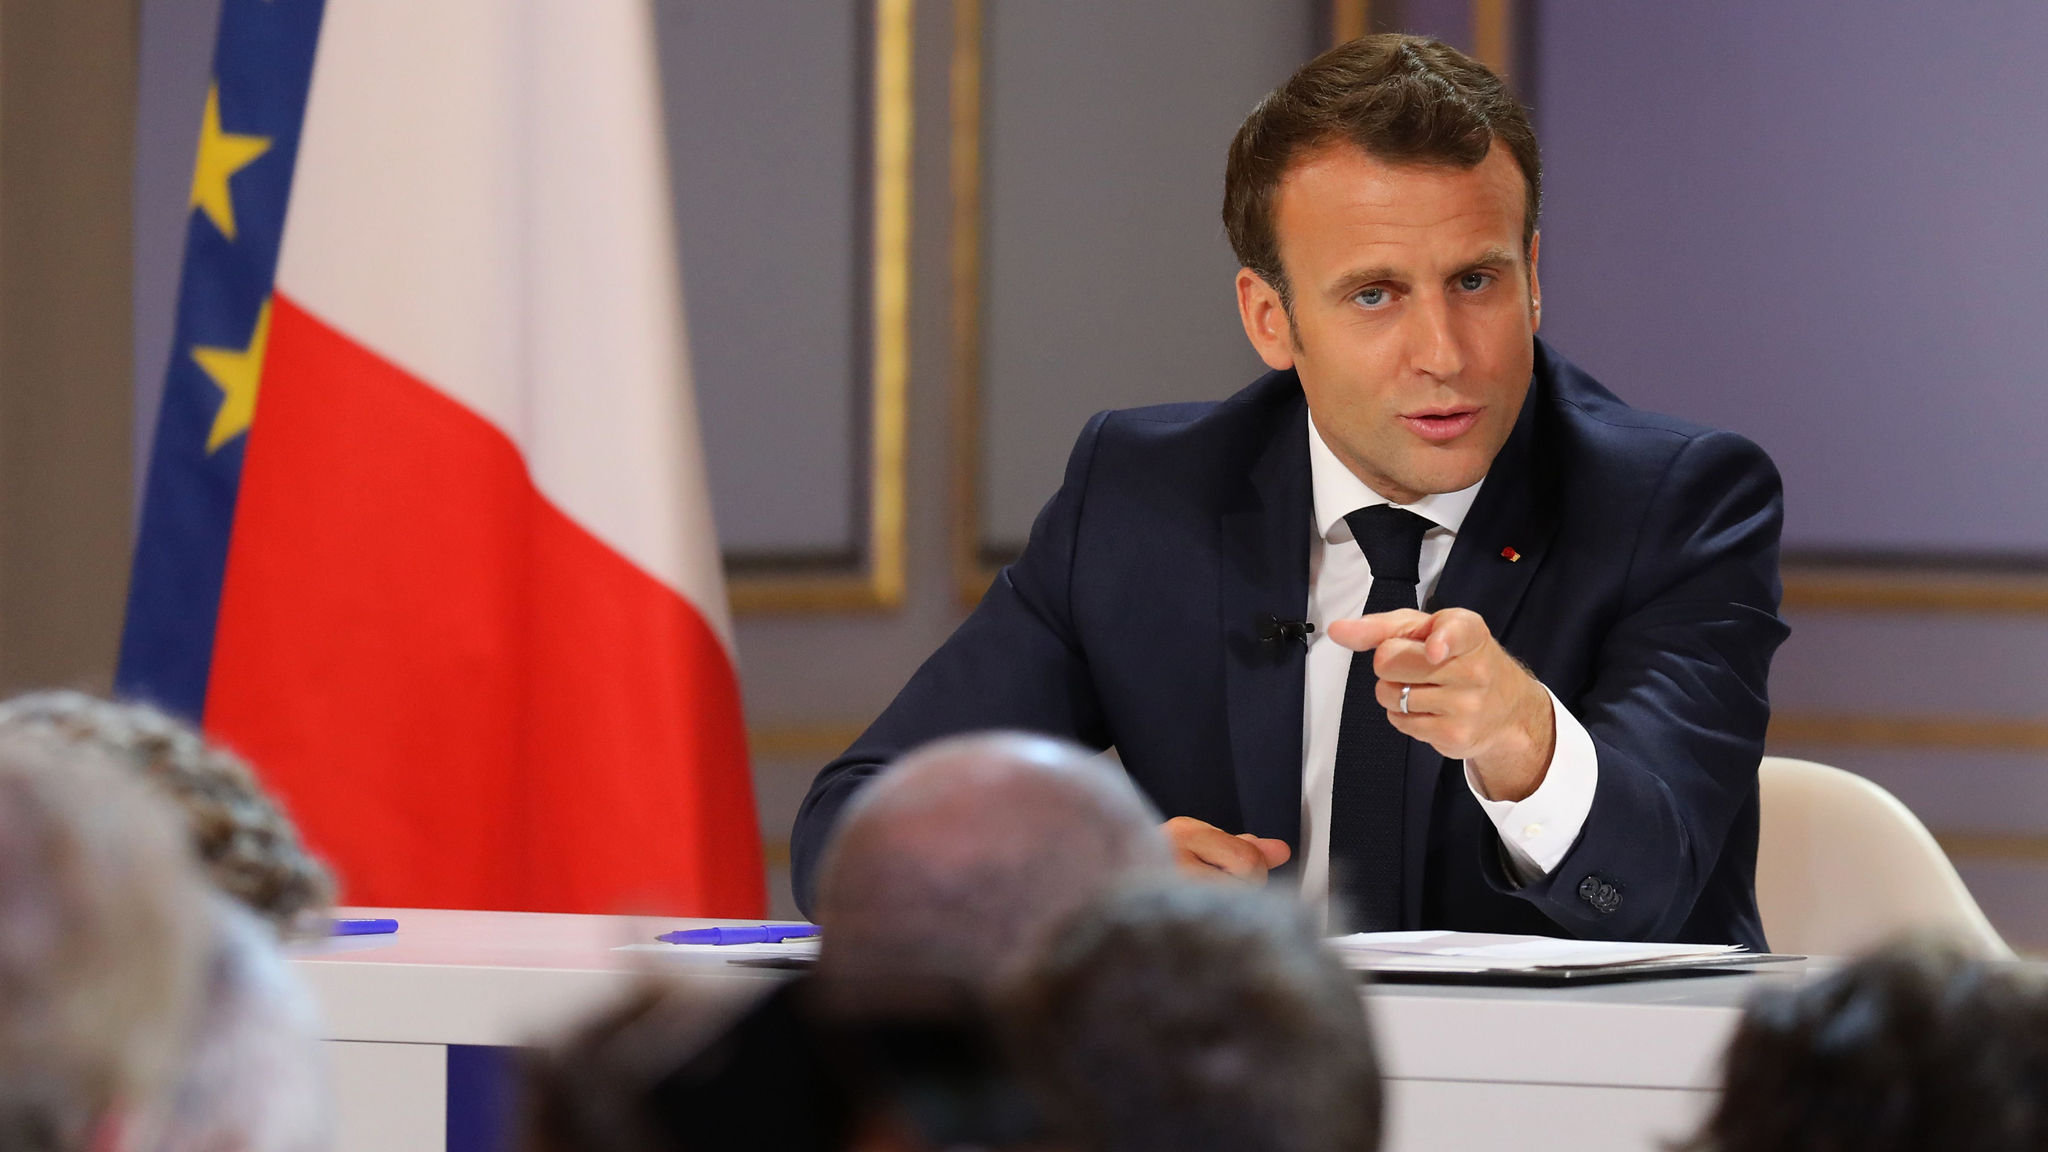 French Employers Up In Arms Over Emmanuel Macron S Tax Plans Financial Times